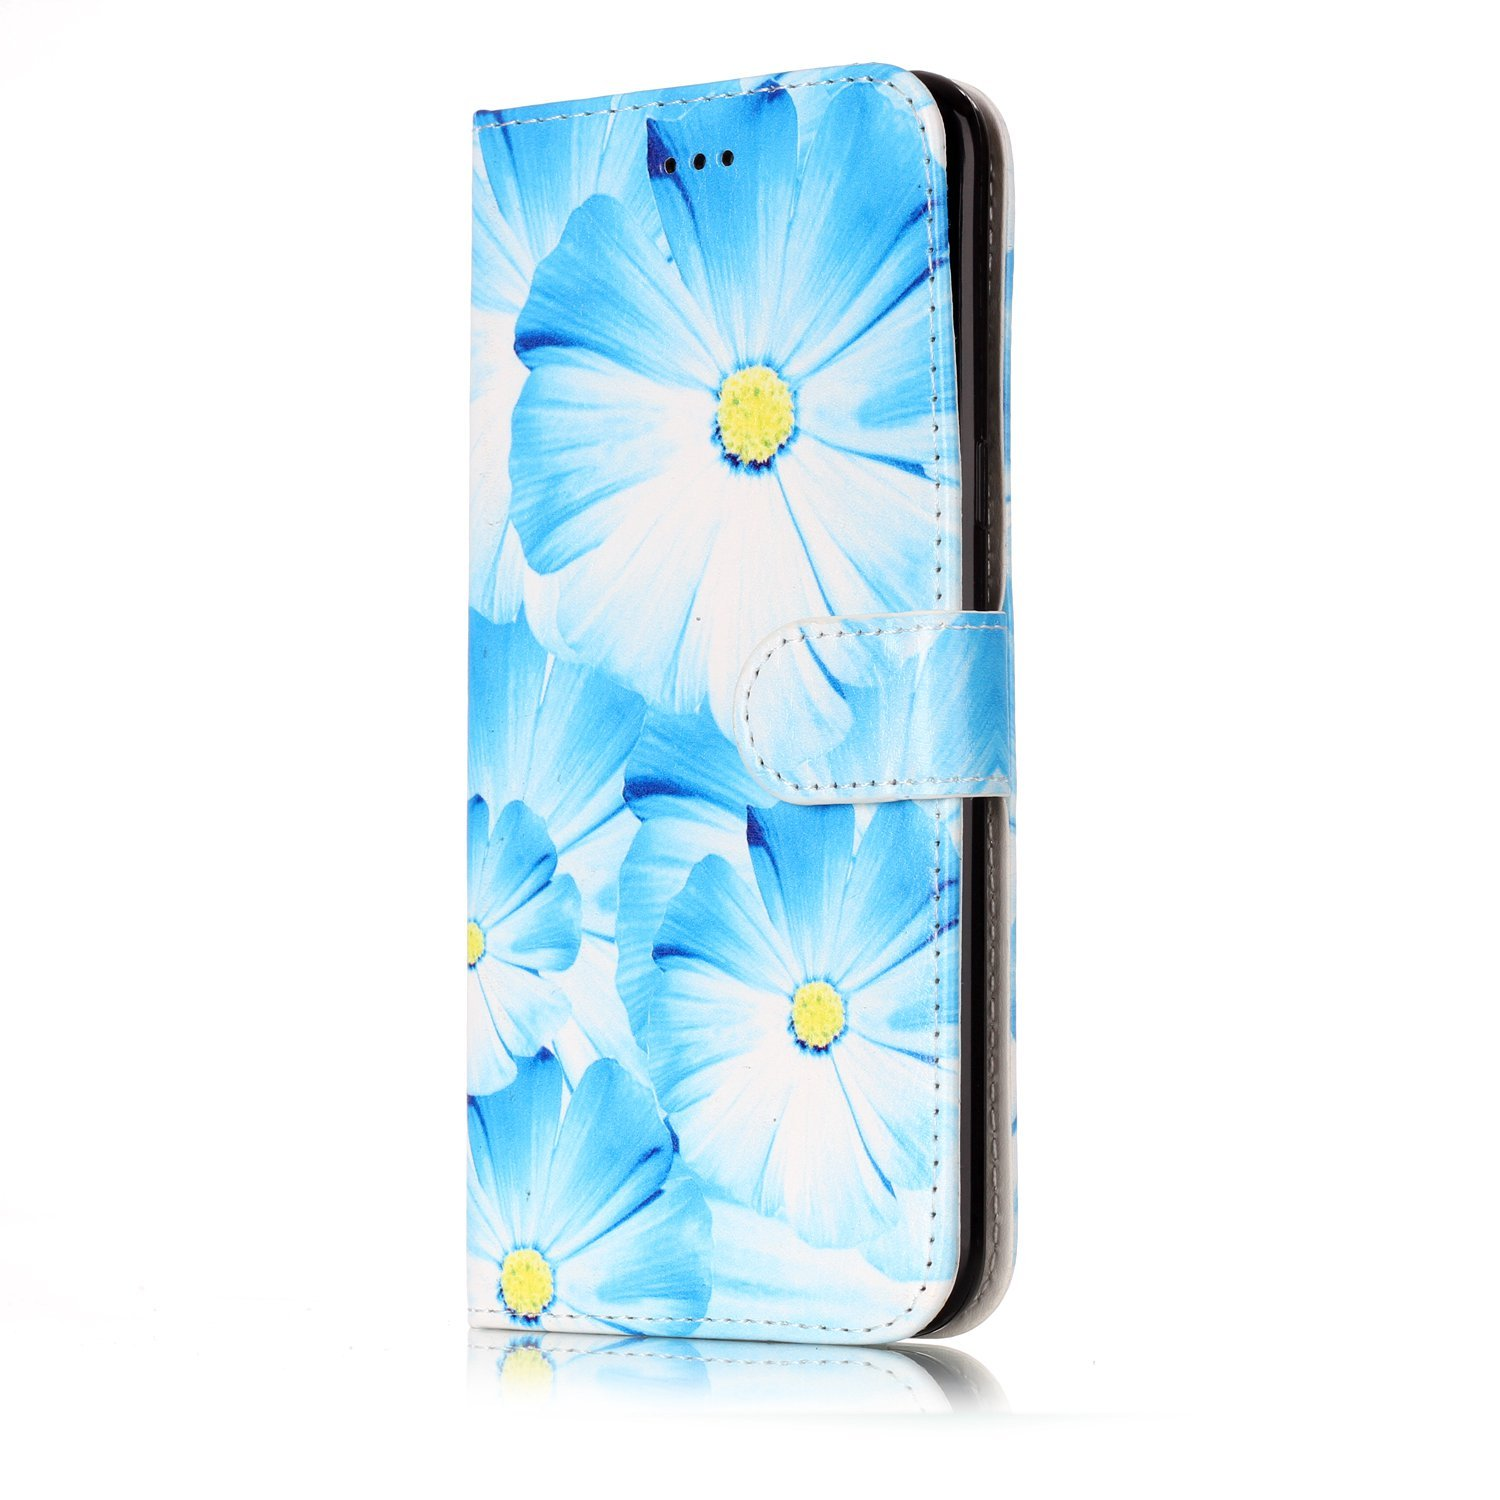 STENES Galaxy S8 Wallet Case - Stylish Series Flowers Premium Soft PU Color matching [Stand Feature] Leather Wallet Cover Flip Cases For Samsung Galaxy S8 - Blue